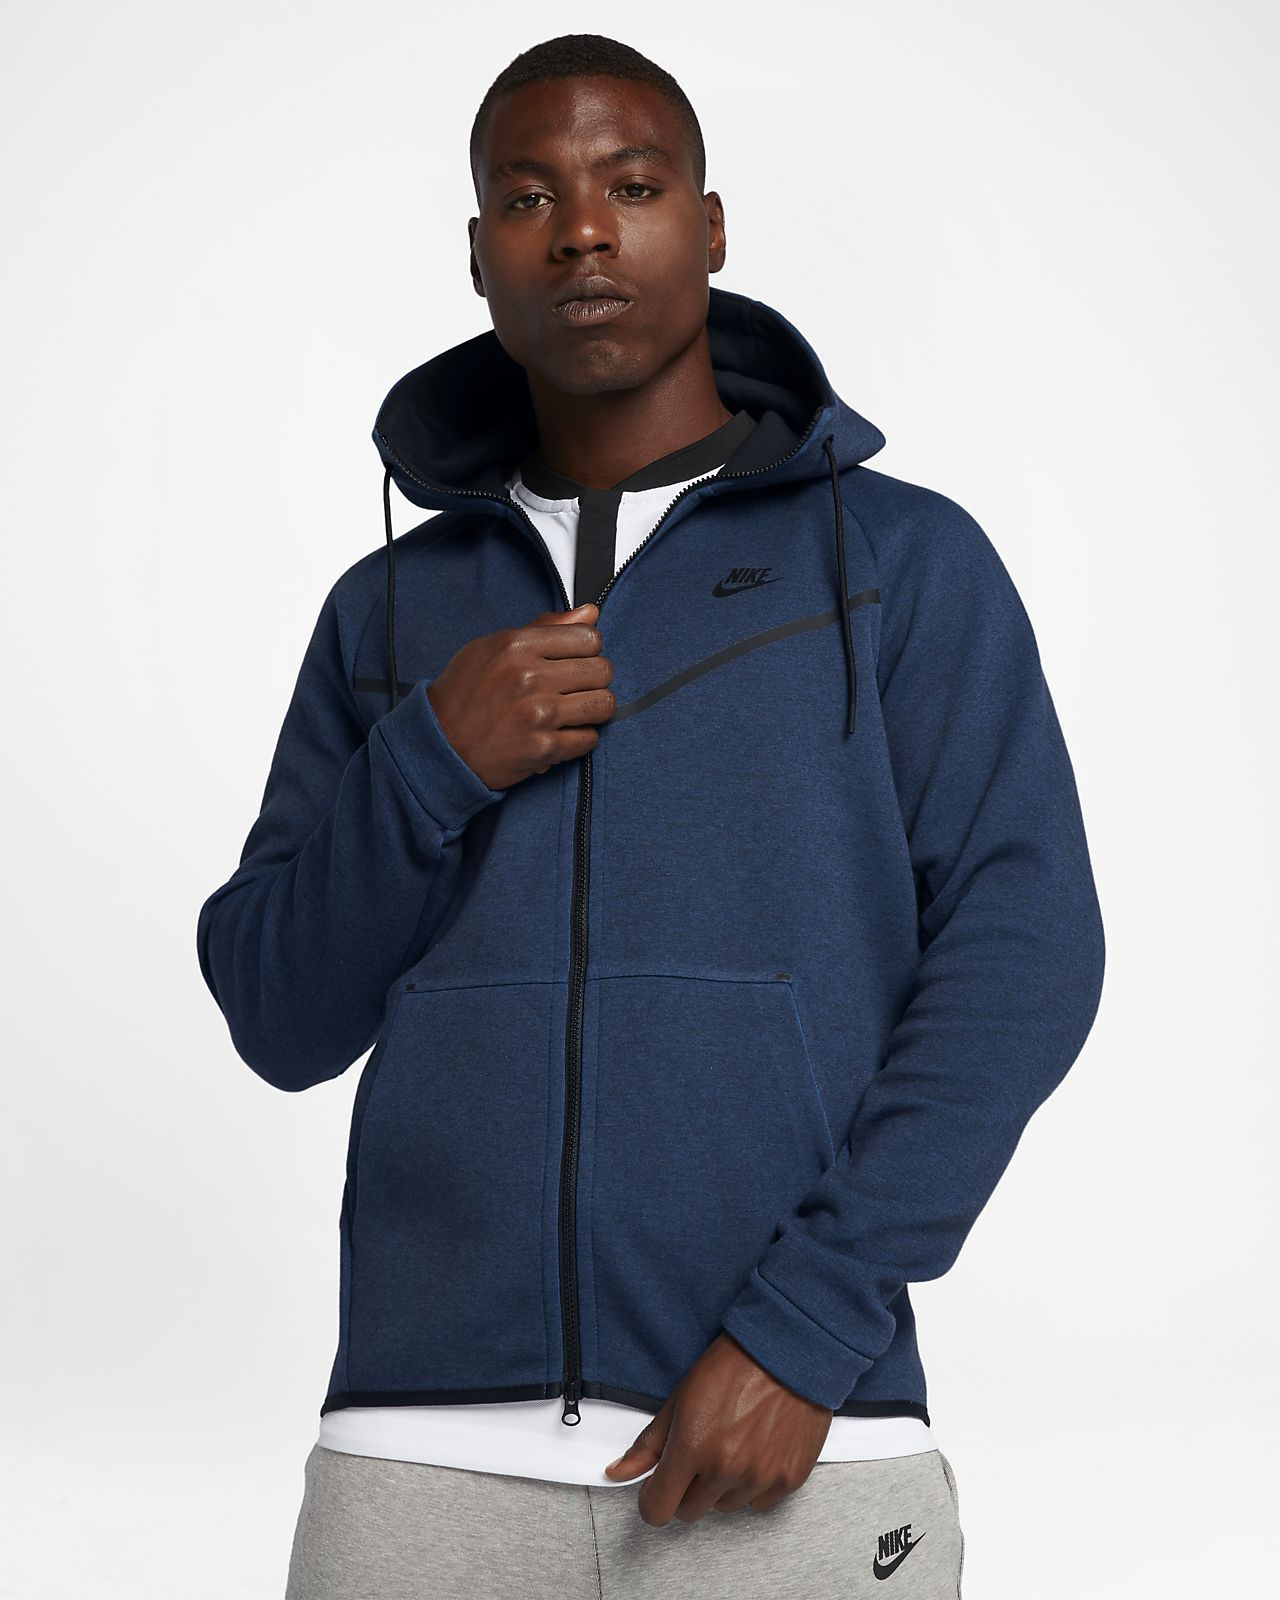 31258f93 Nike Sportswear Tech Fleece Windrunner Men's Full-Zip Hoodie ...